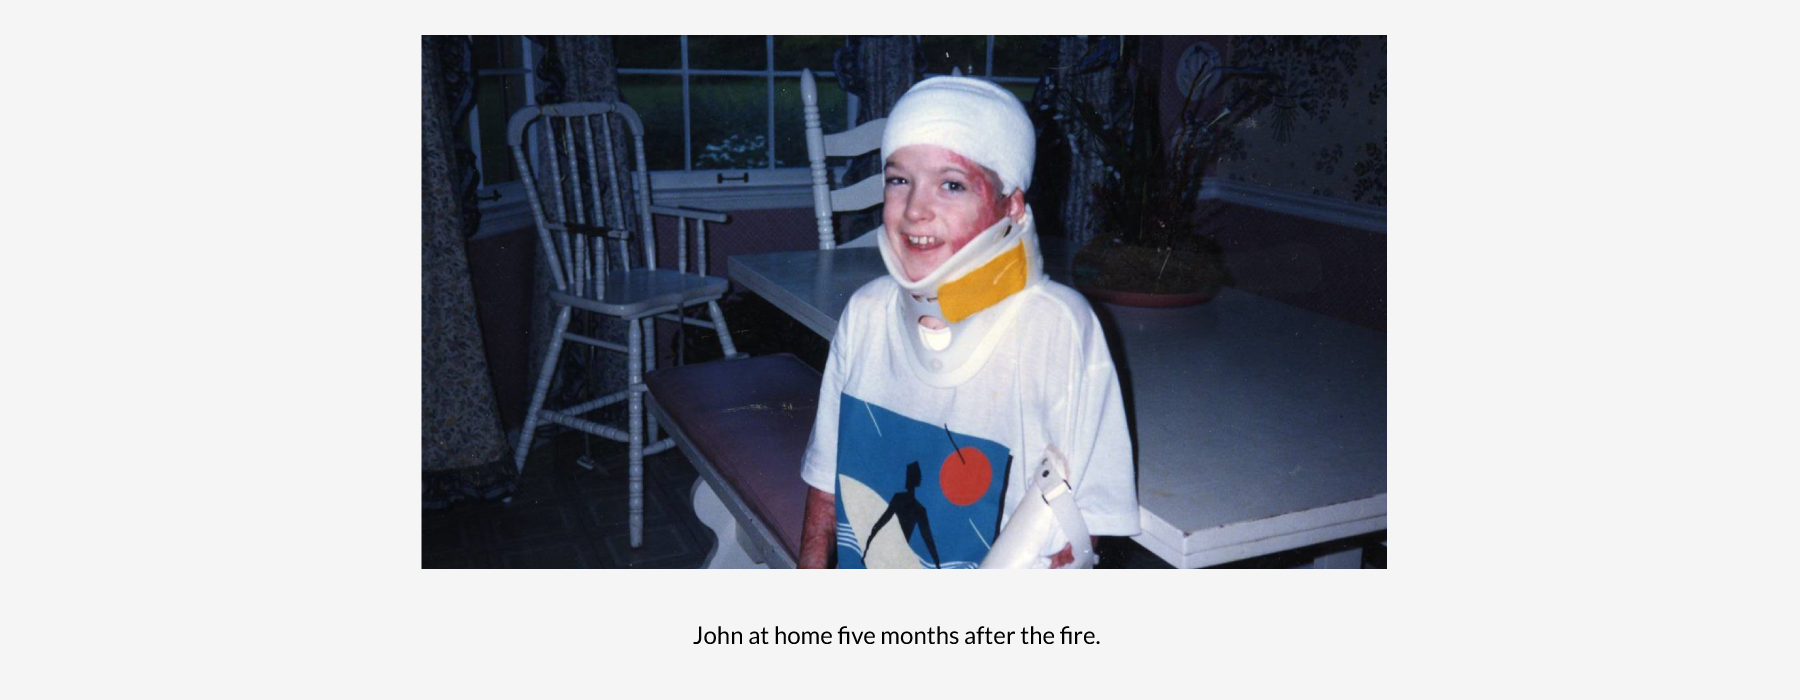 John five months after the fire